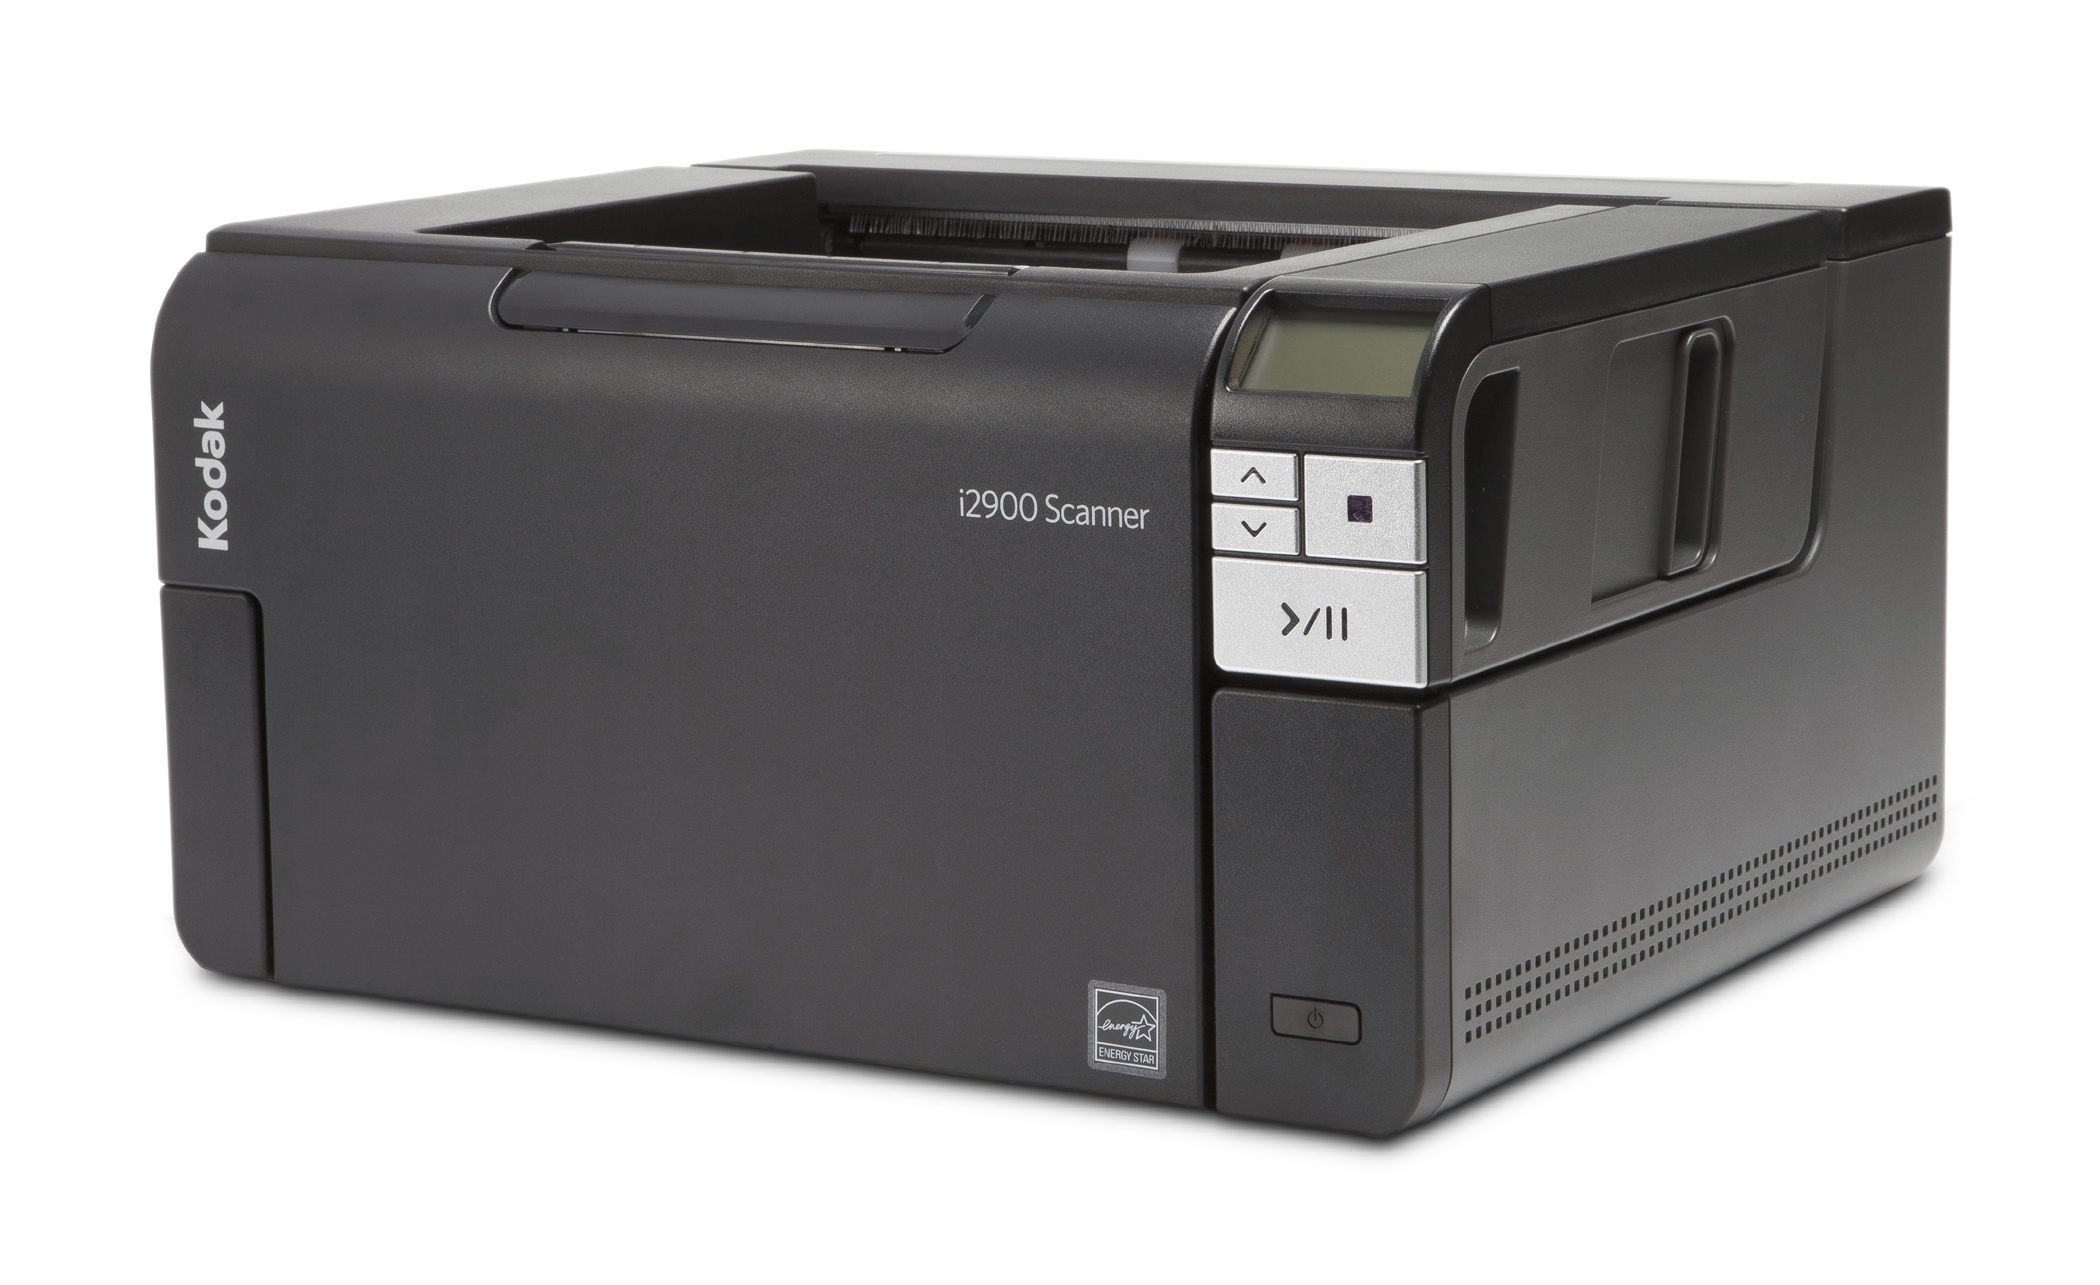 Kodak i2900 document scanner review and specification